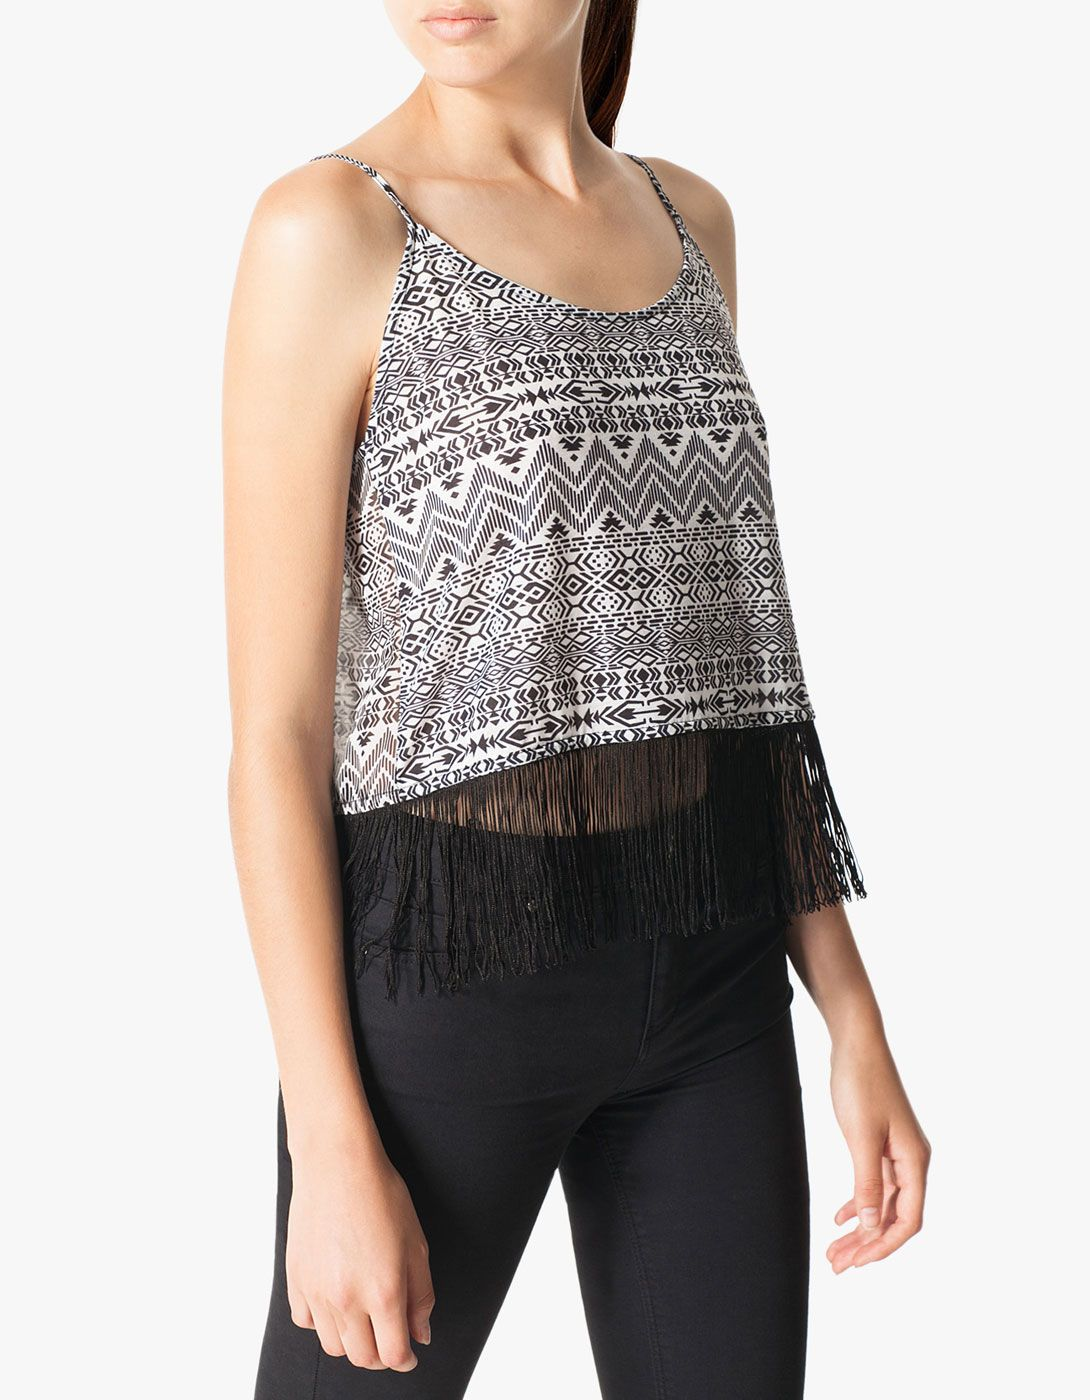 Ethnic top with fringing detail